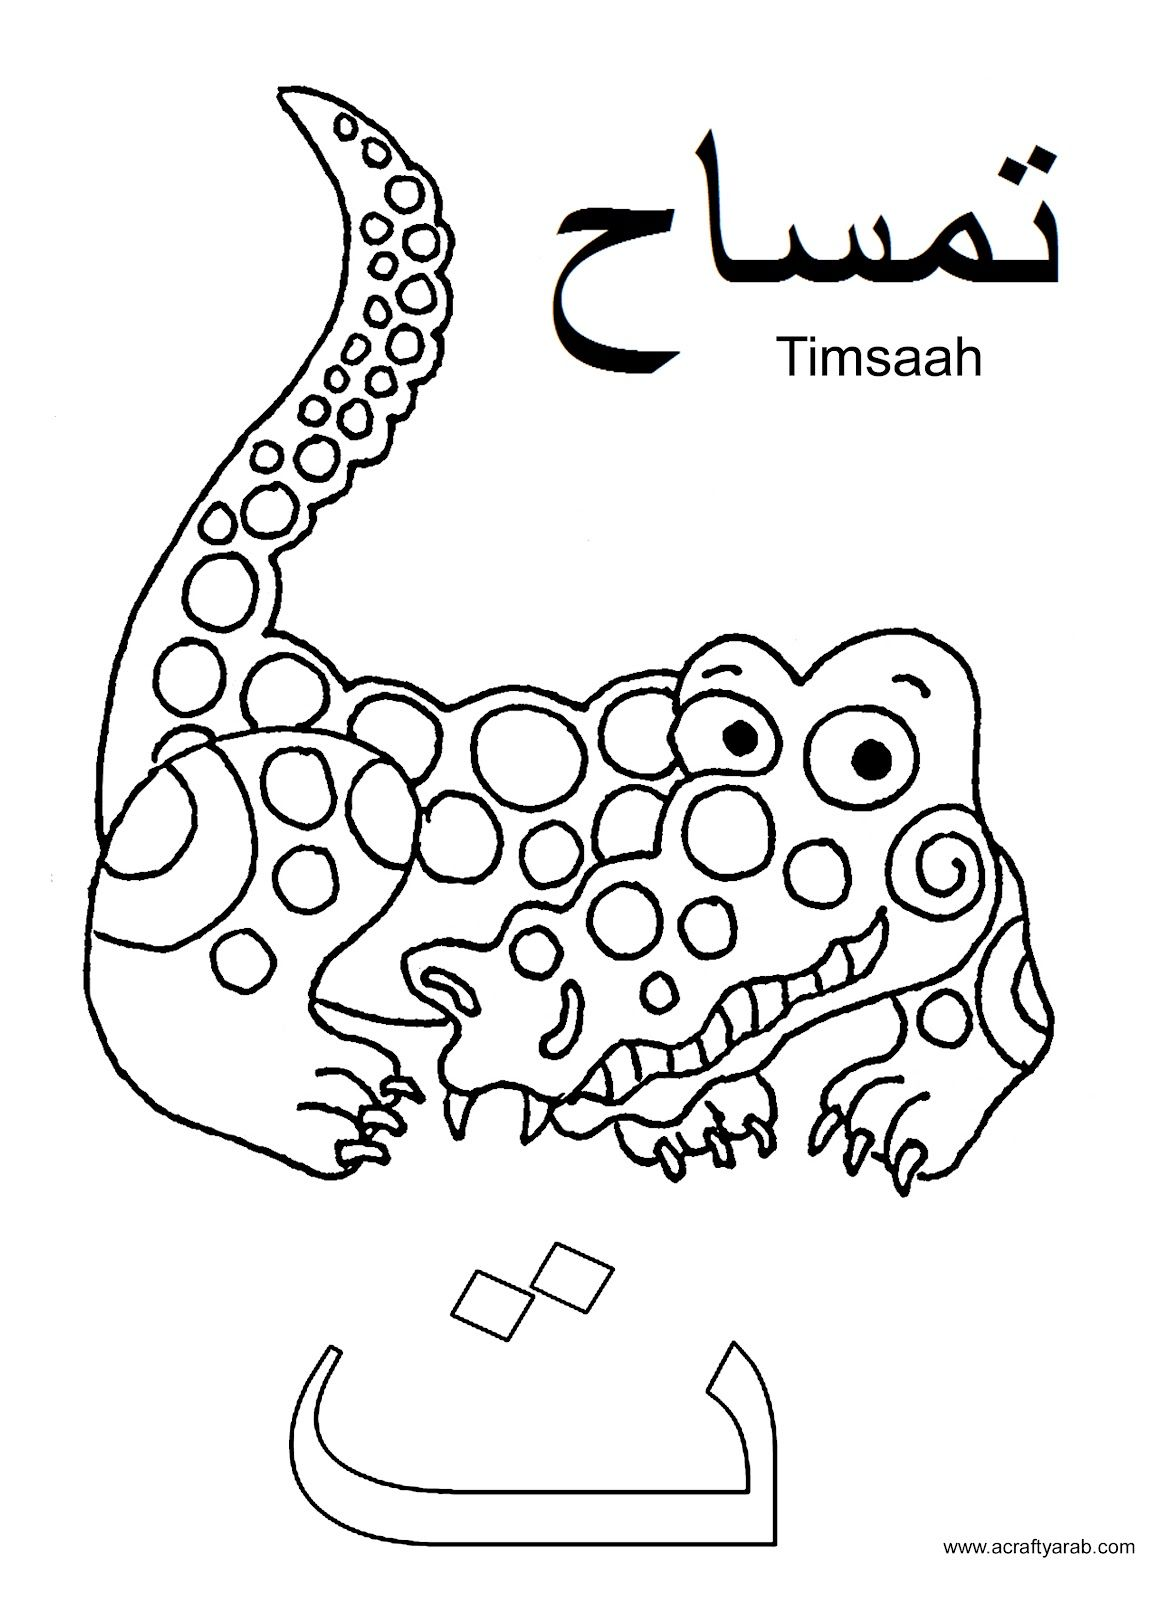 A Crafty Arab Arabic Alphabet Coloring Pages Ta Is For Timsaah Alphabet Coloring Pages Alphabet Coloring Arabic Alphabet For Kids